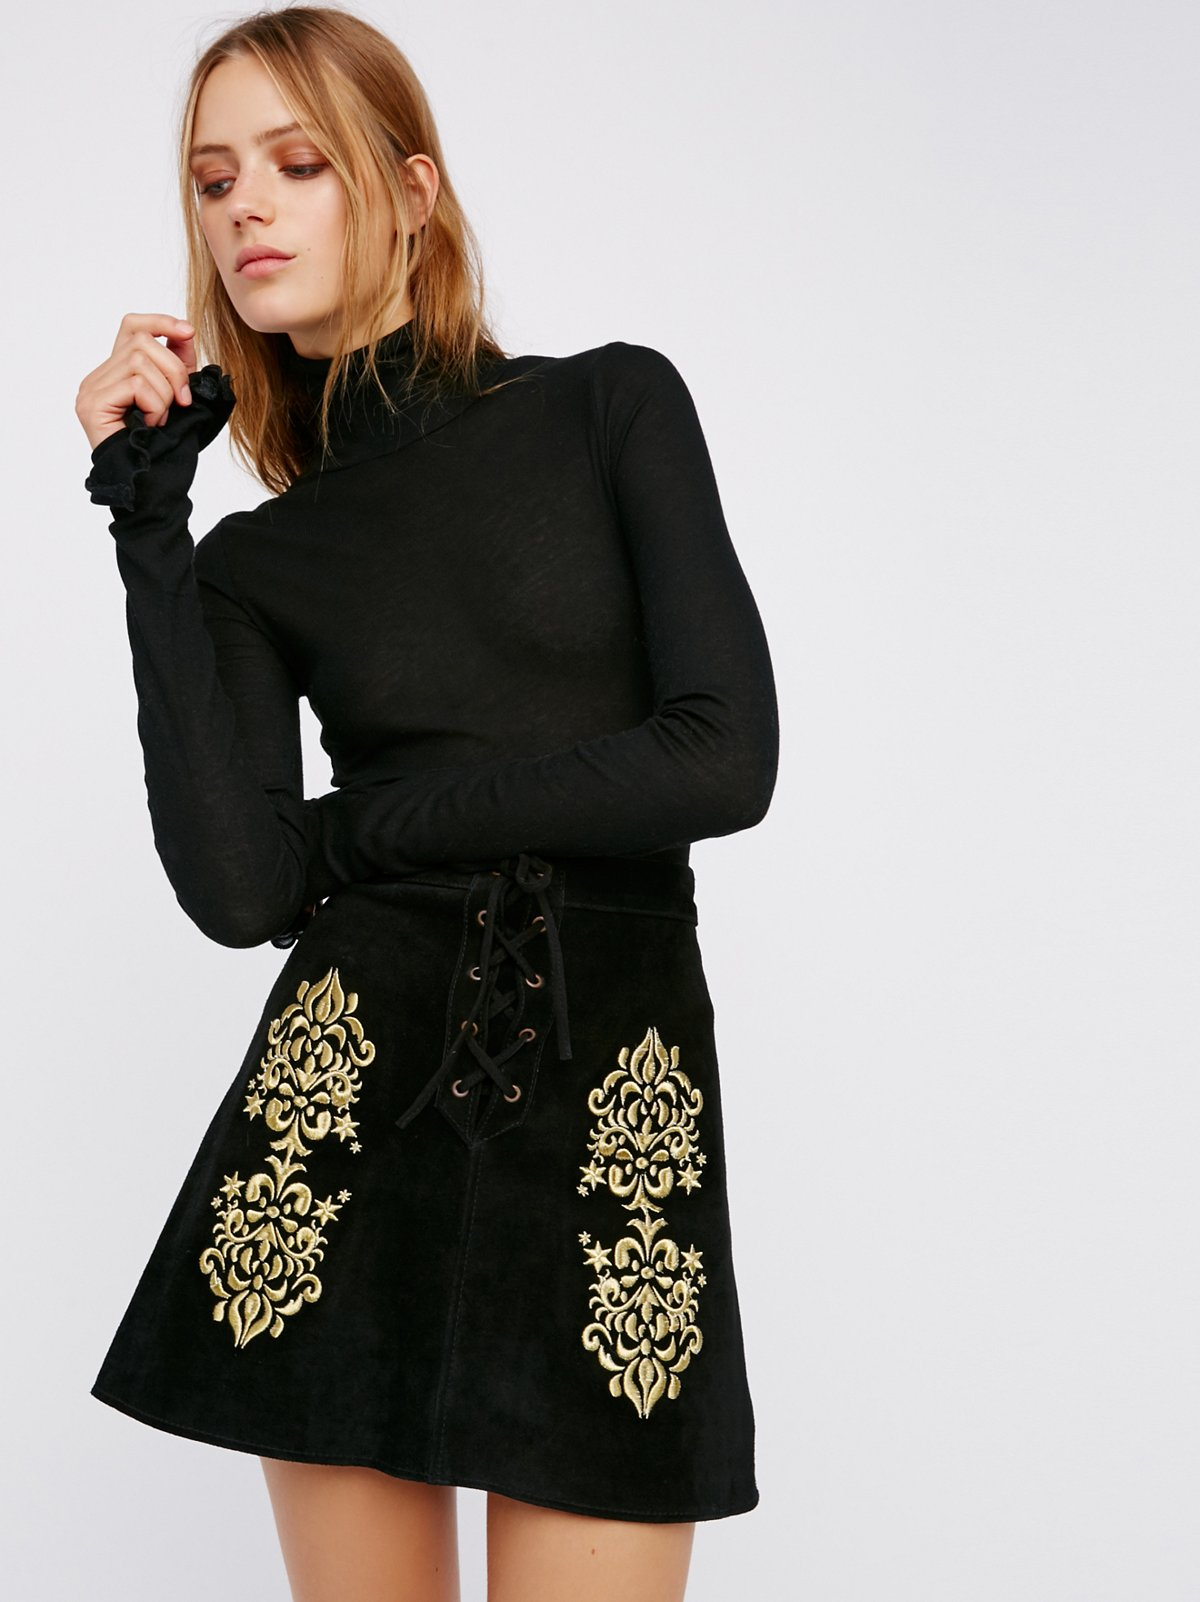 Wild West Embroidered Mini Skirt